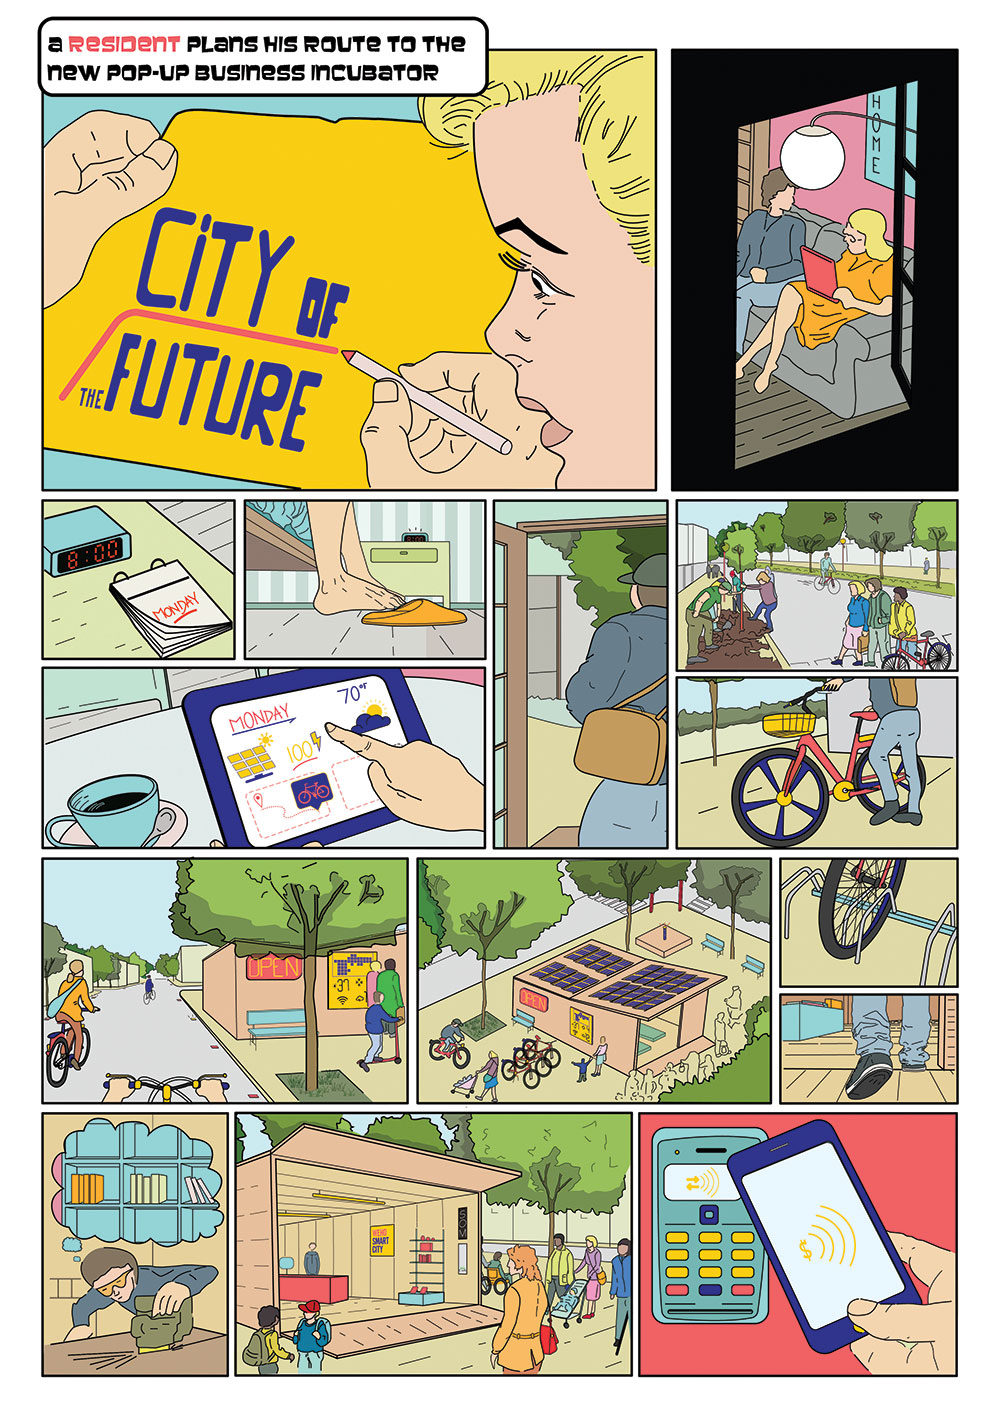 A page from a graphic novel developed for the city of West Hollywood explains how technology can facilitate a seamless mobility experience in West Hollywood through better information, connectivity between public and private transport modes, and payment options.